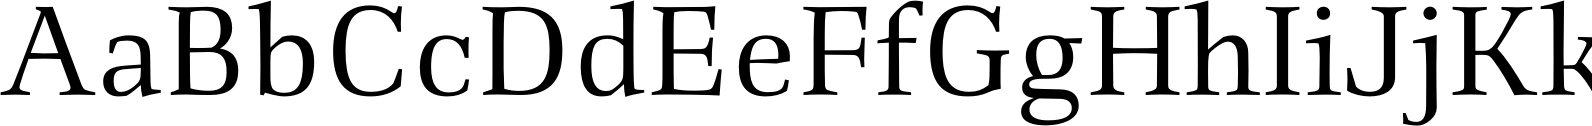 Richler Regular Font